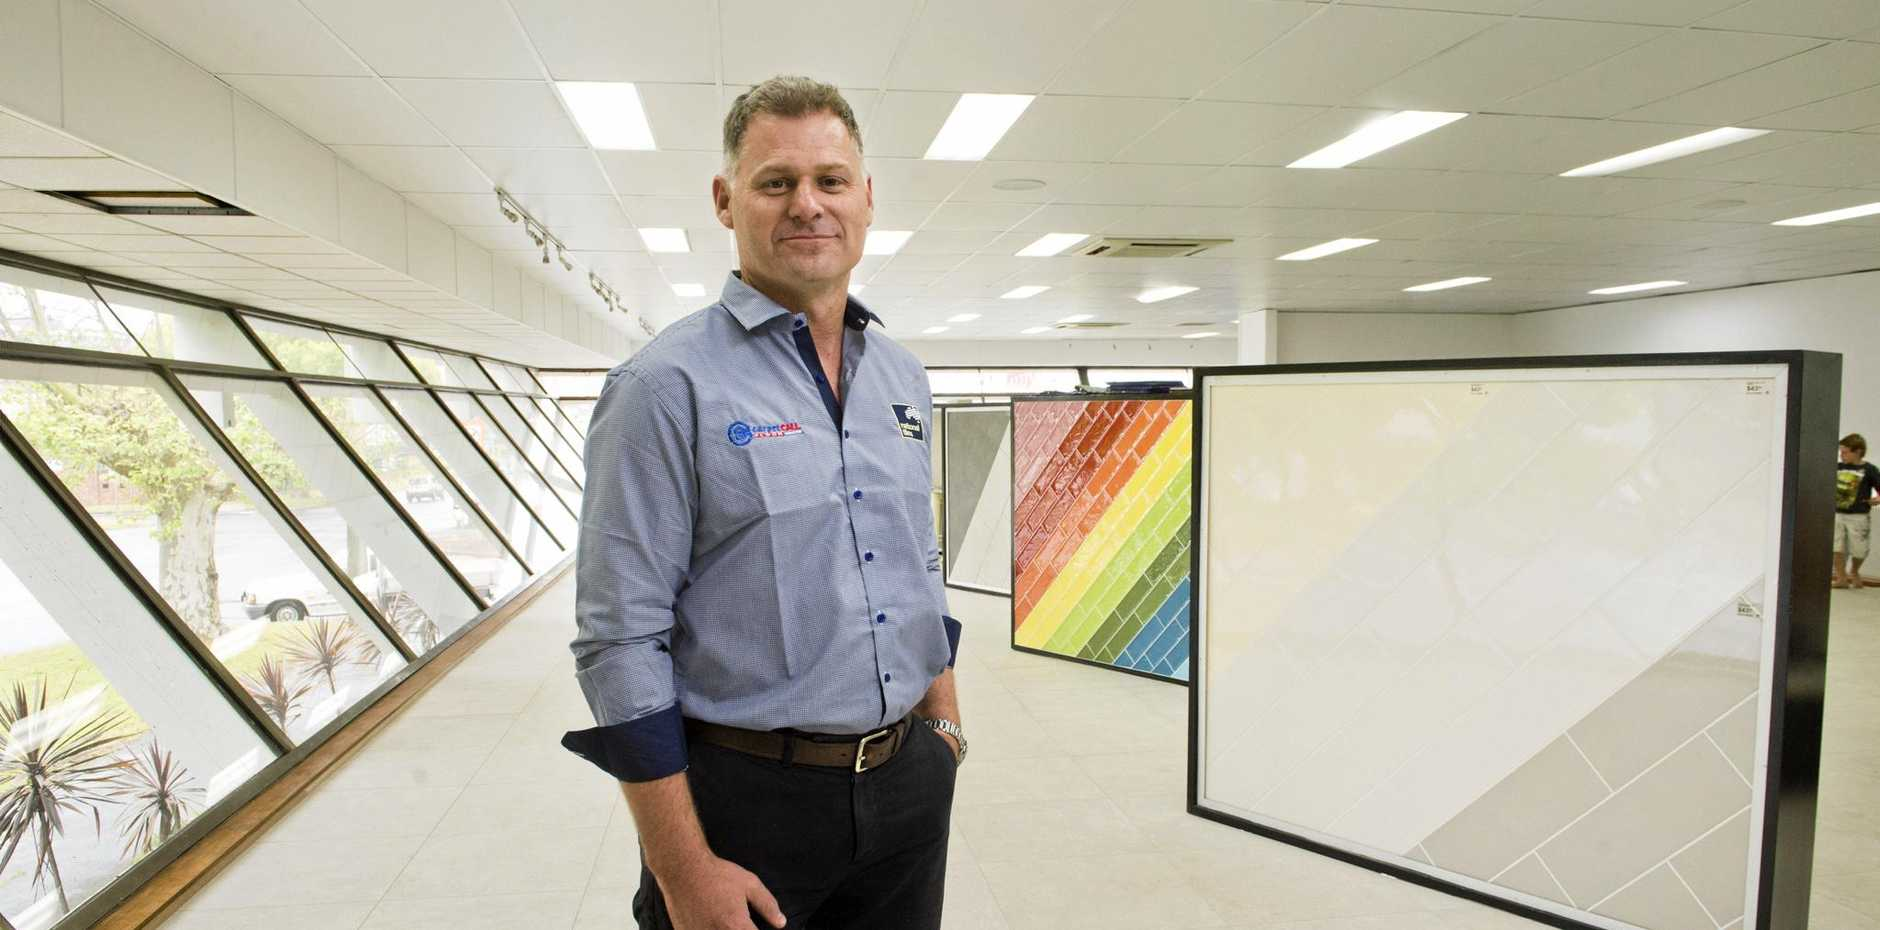 FLOORING MECCA: Carpet Call and National Tiles Toowoomba store owner Barton Castley ahead of the store opening tomorrow.